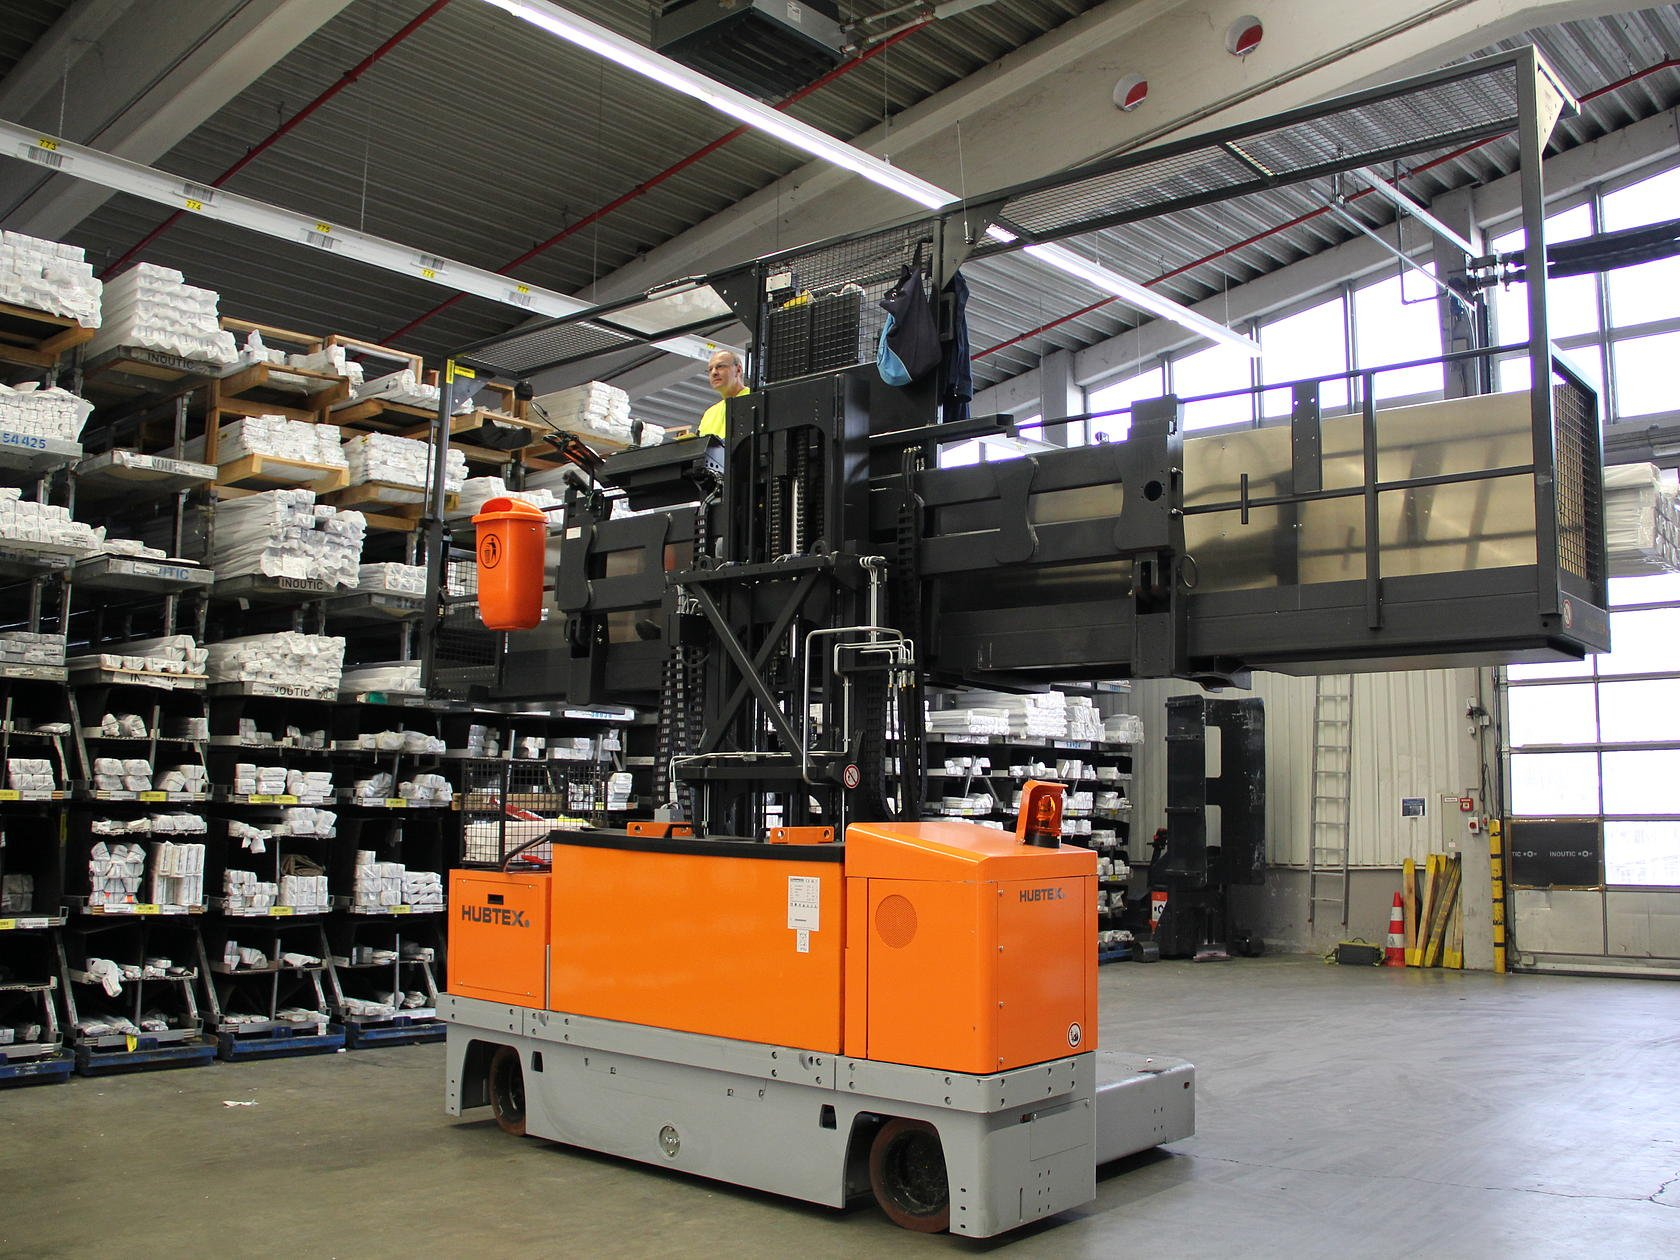 Electric multidirectional sideloader with attached order picking platform